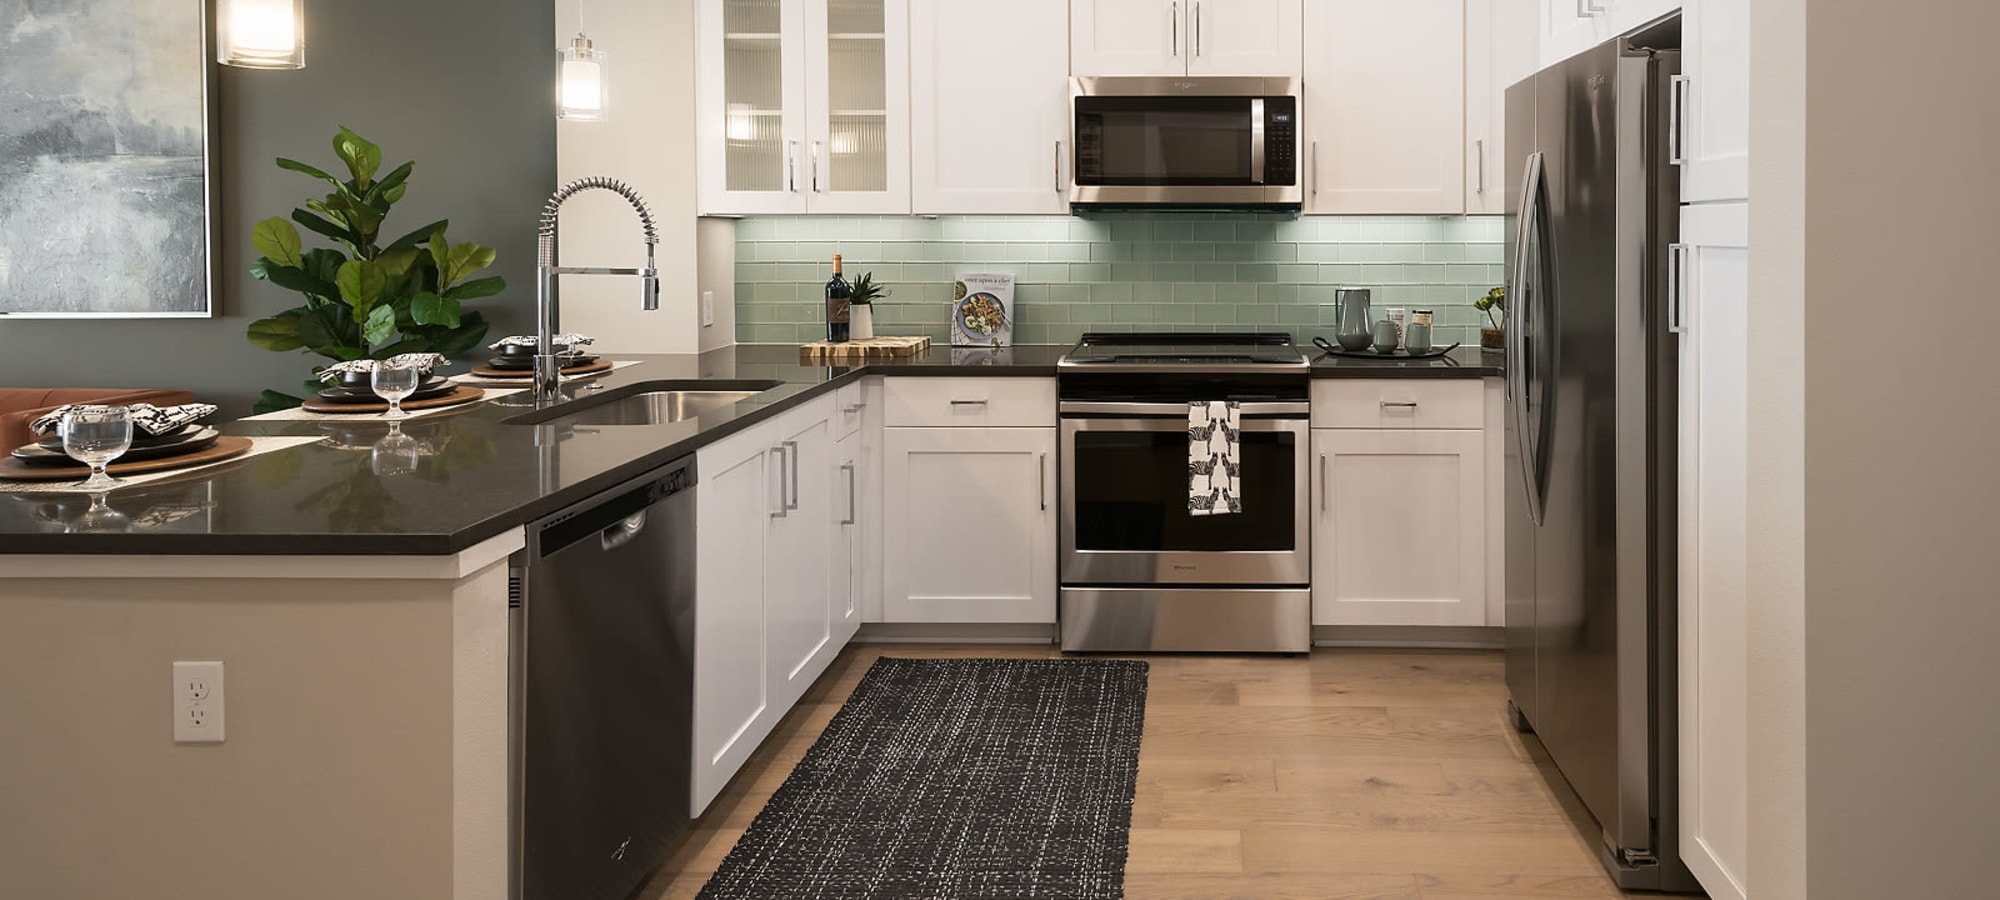 High end stainless steel appliances at The Halsten at Chauncey Lane in Scottsdale, Arizona